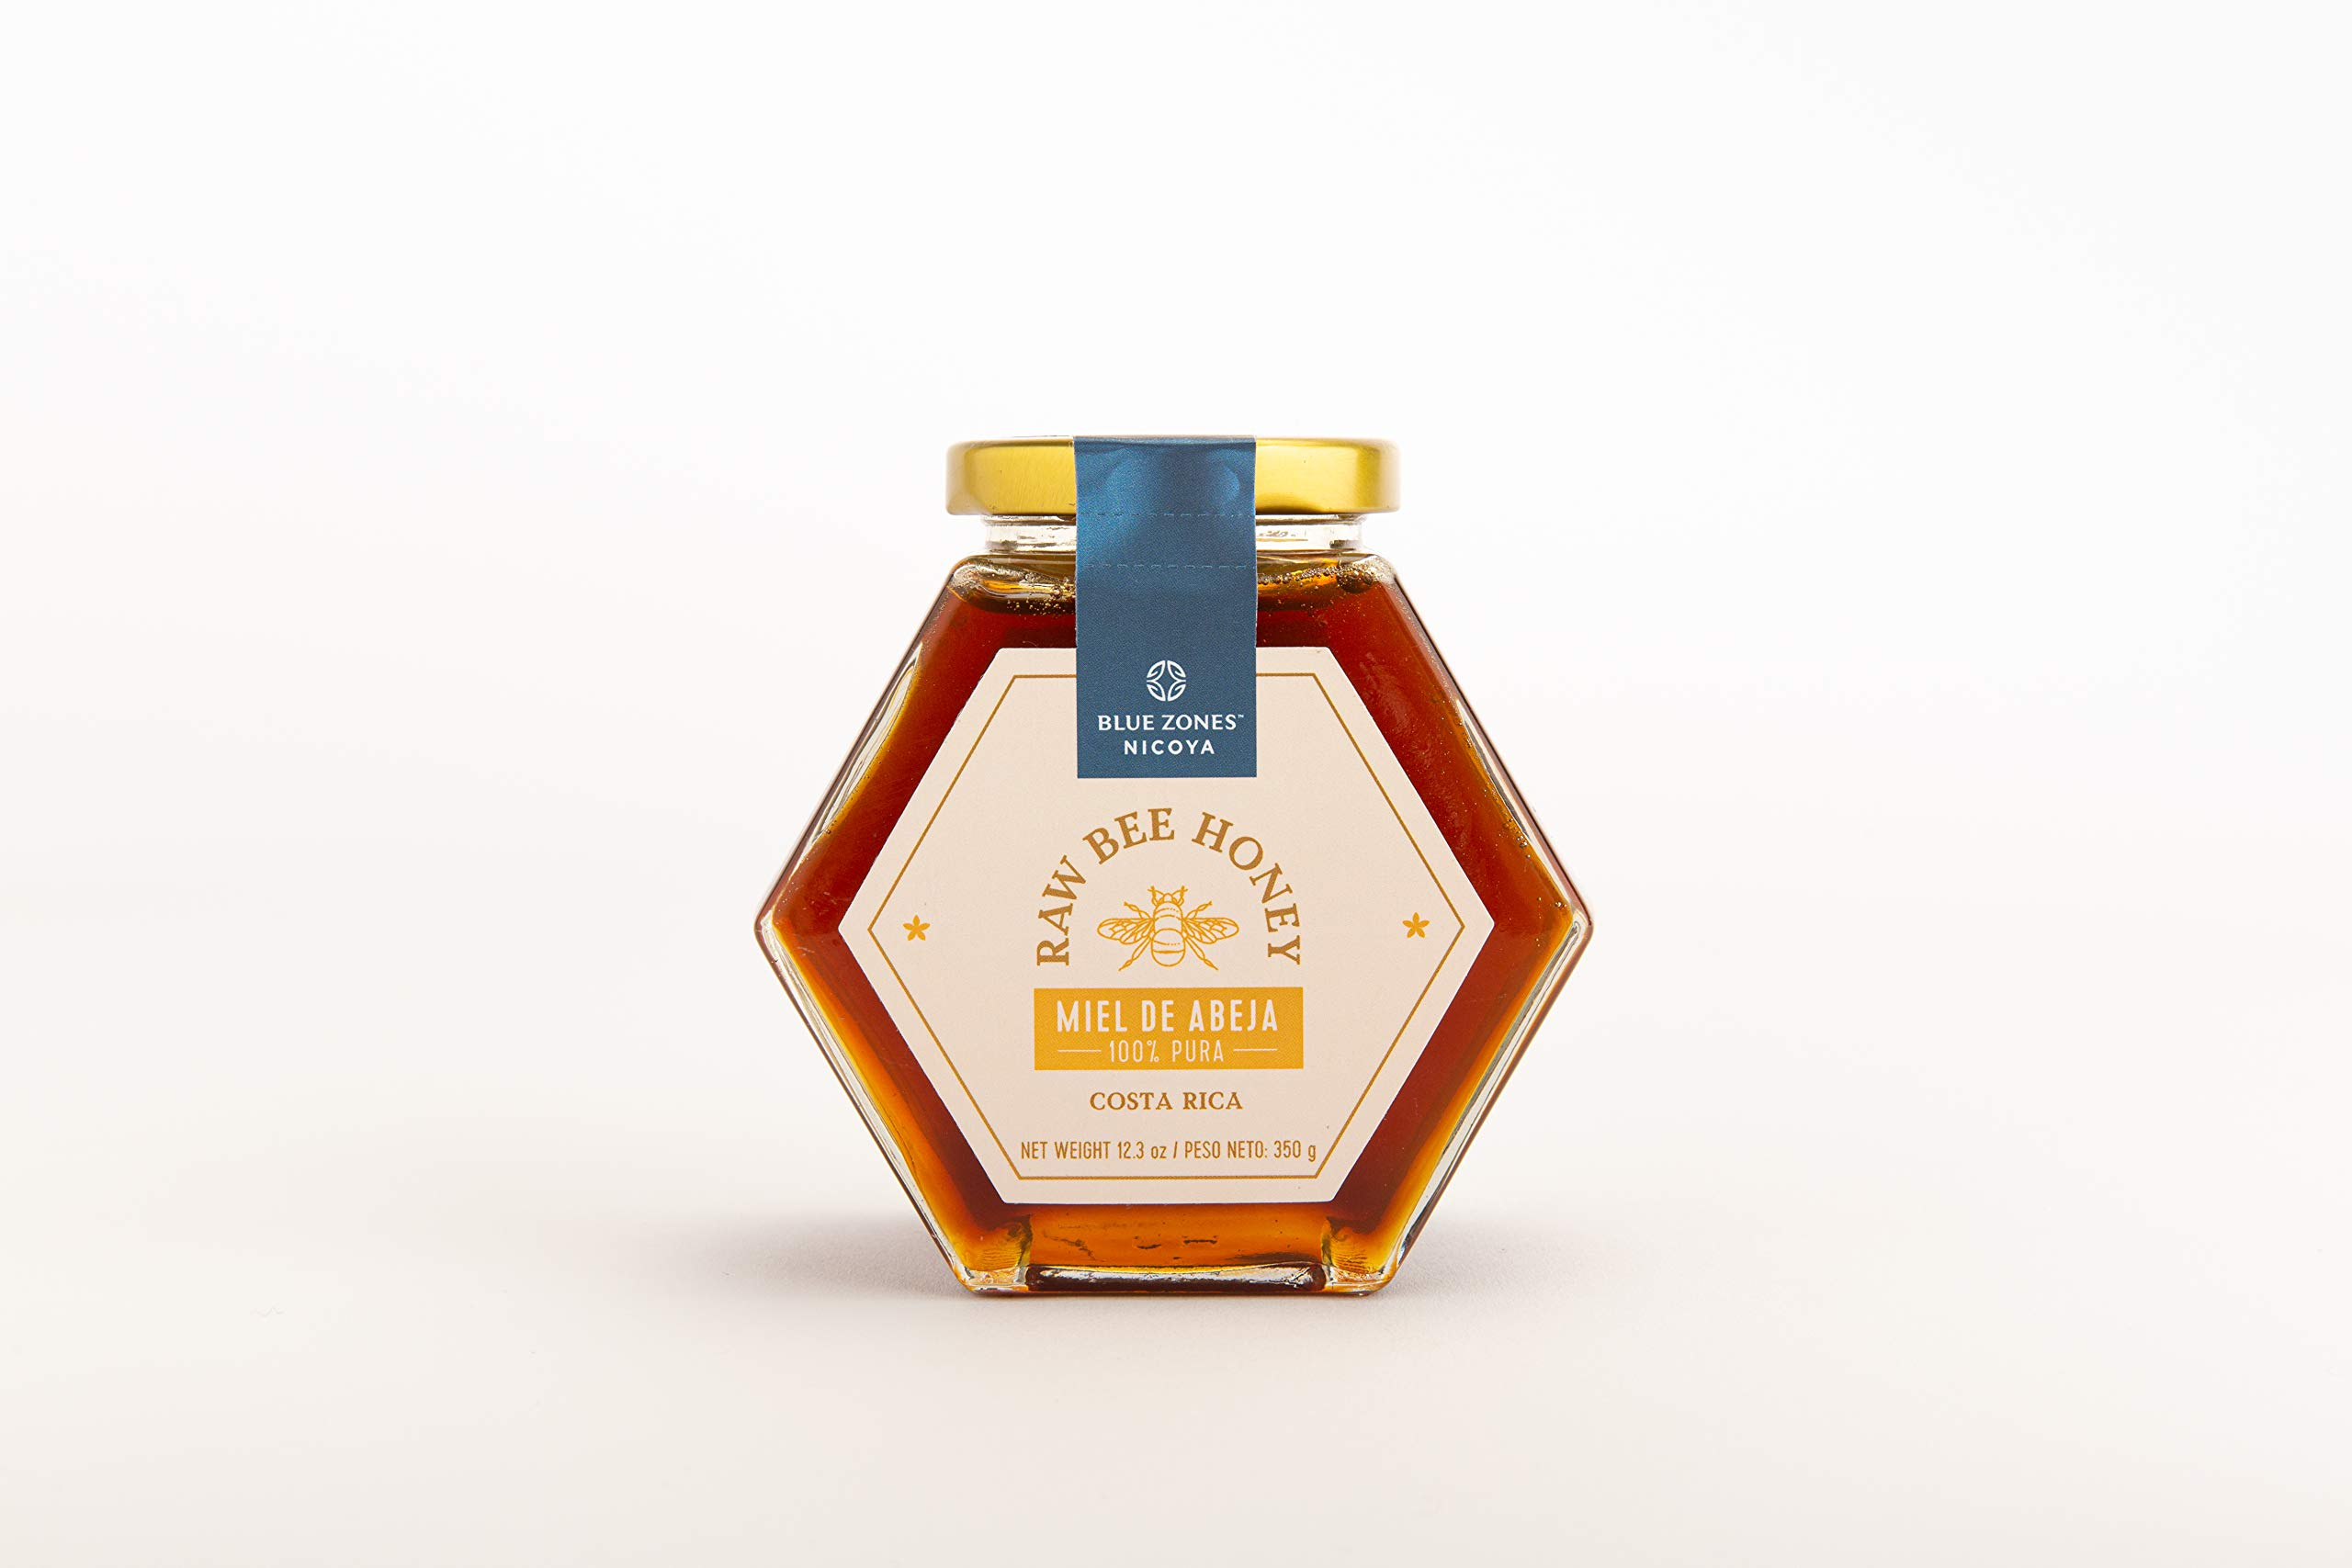 Blue Zones Nicoya Wild Bee Raw Honey | 12.3 Ounce (350g) | 100% Costa Rican | Multifloral, Tropical Dry Forest | 100% Raw Pure Honey